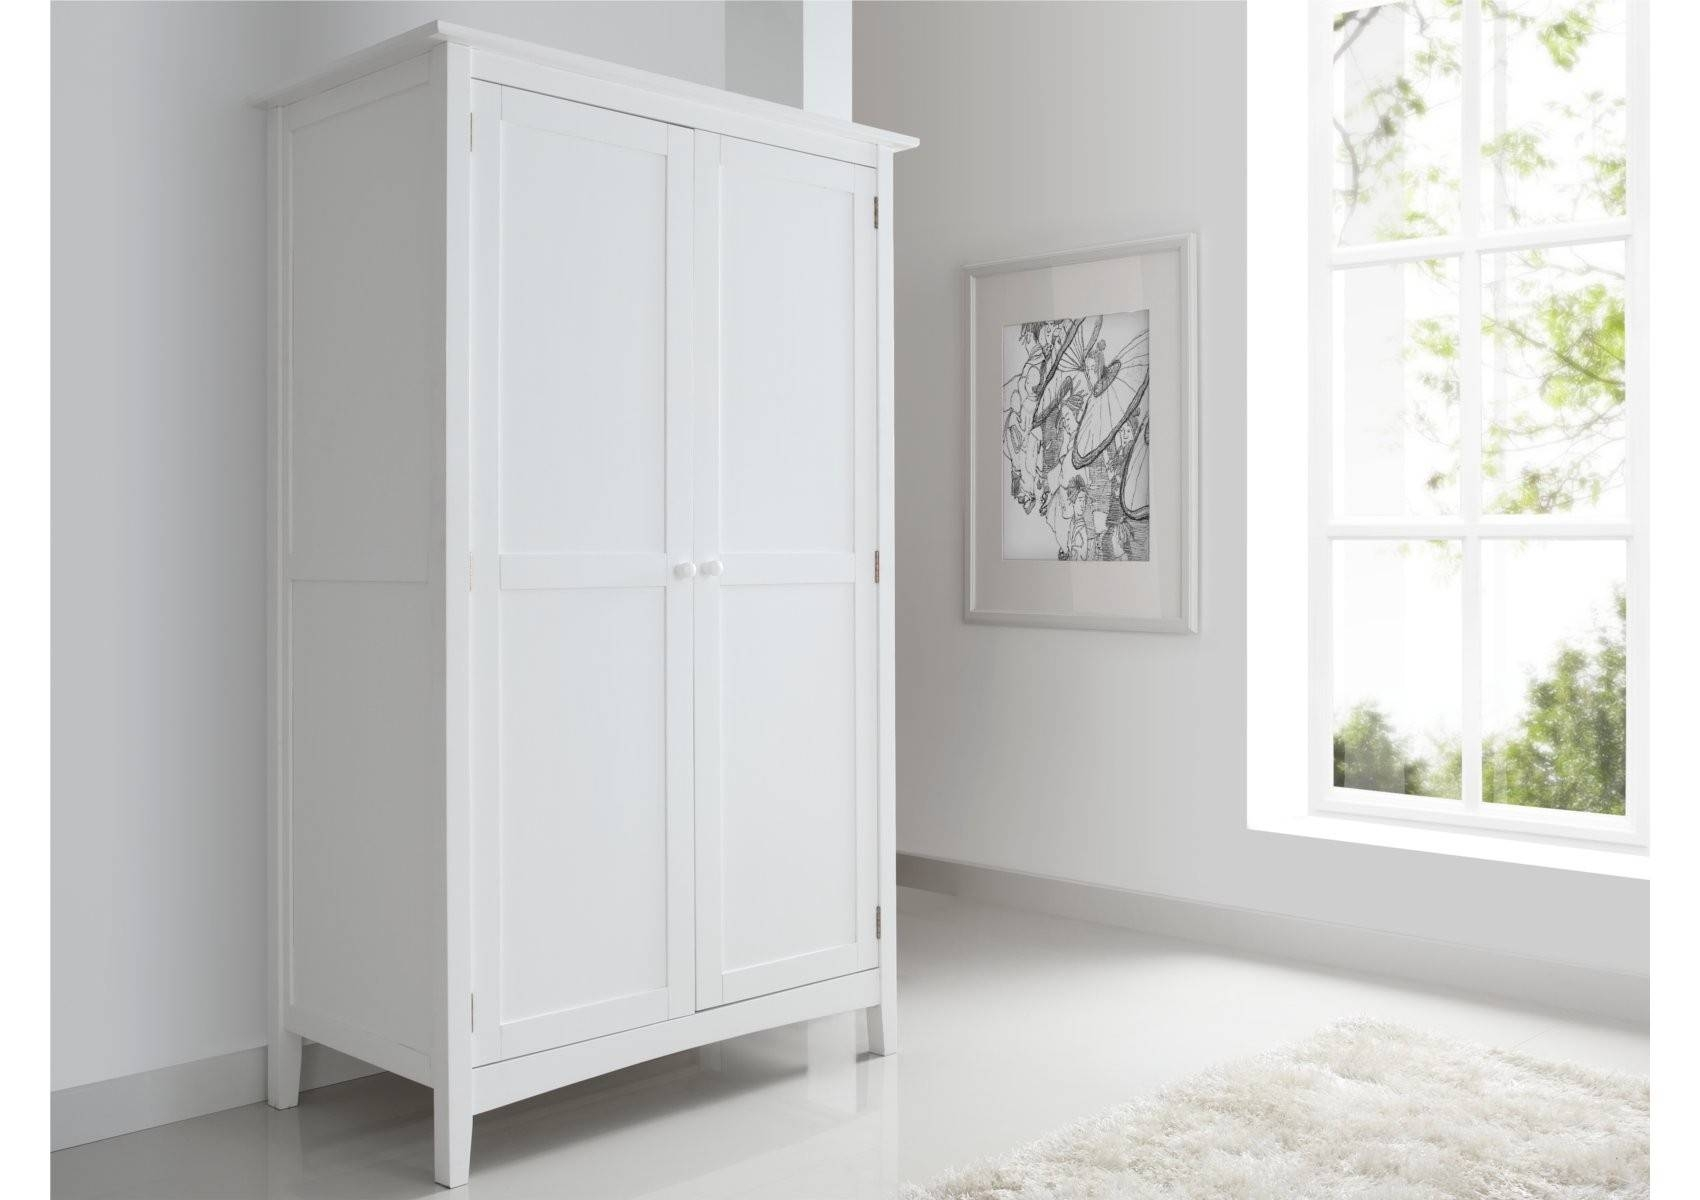 Aspen 2 Door, 1 Drawer Wardrobe - Furniture with regard to White Wood Wardrobes With Drawers (Image 1 of 15)